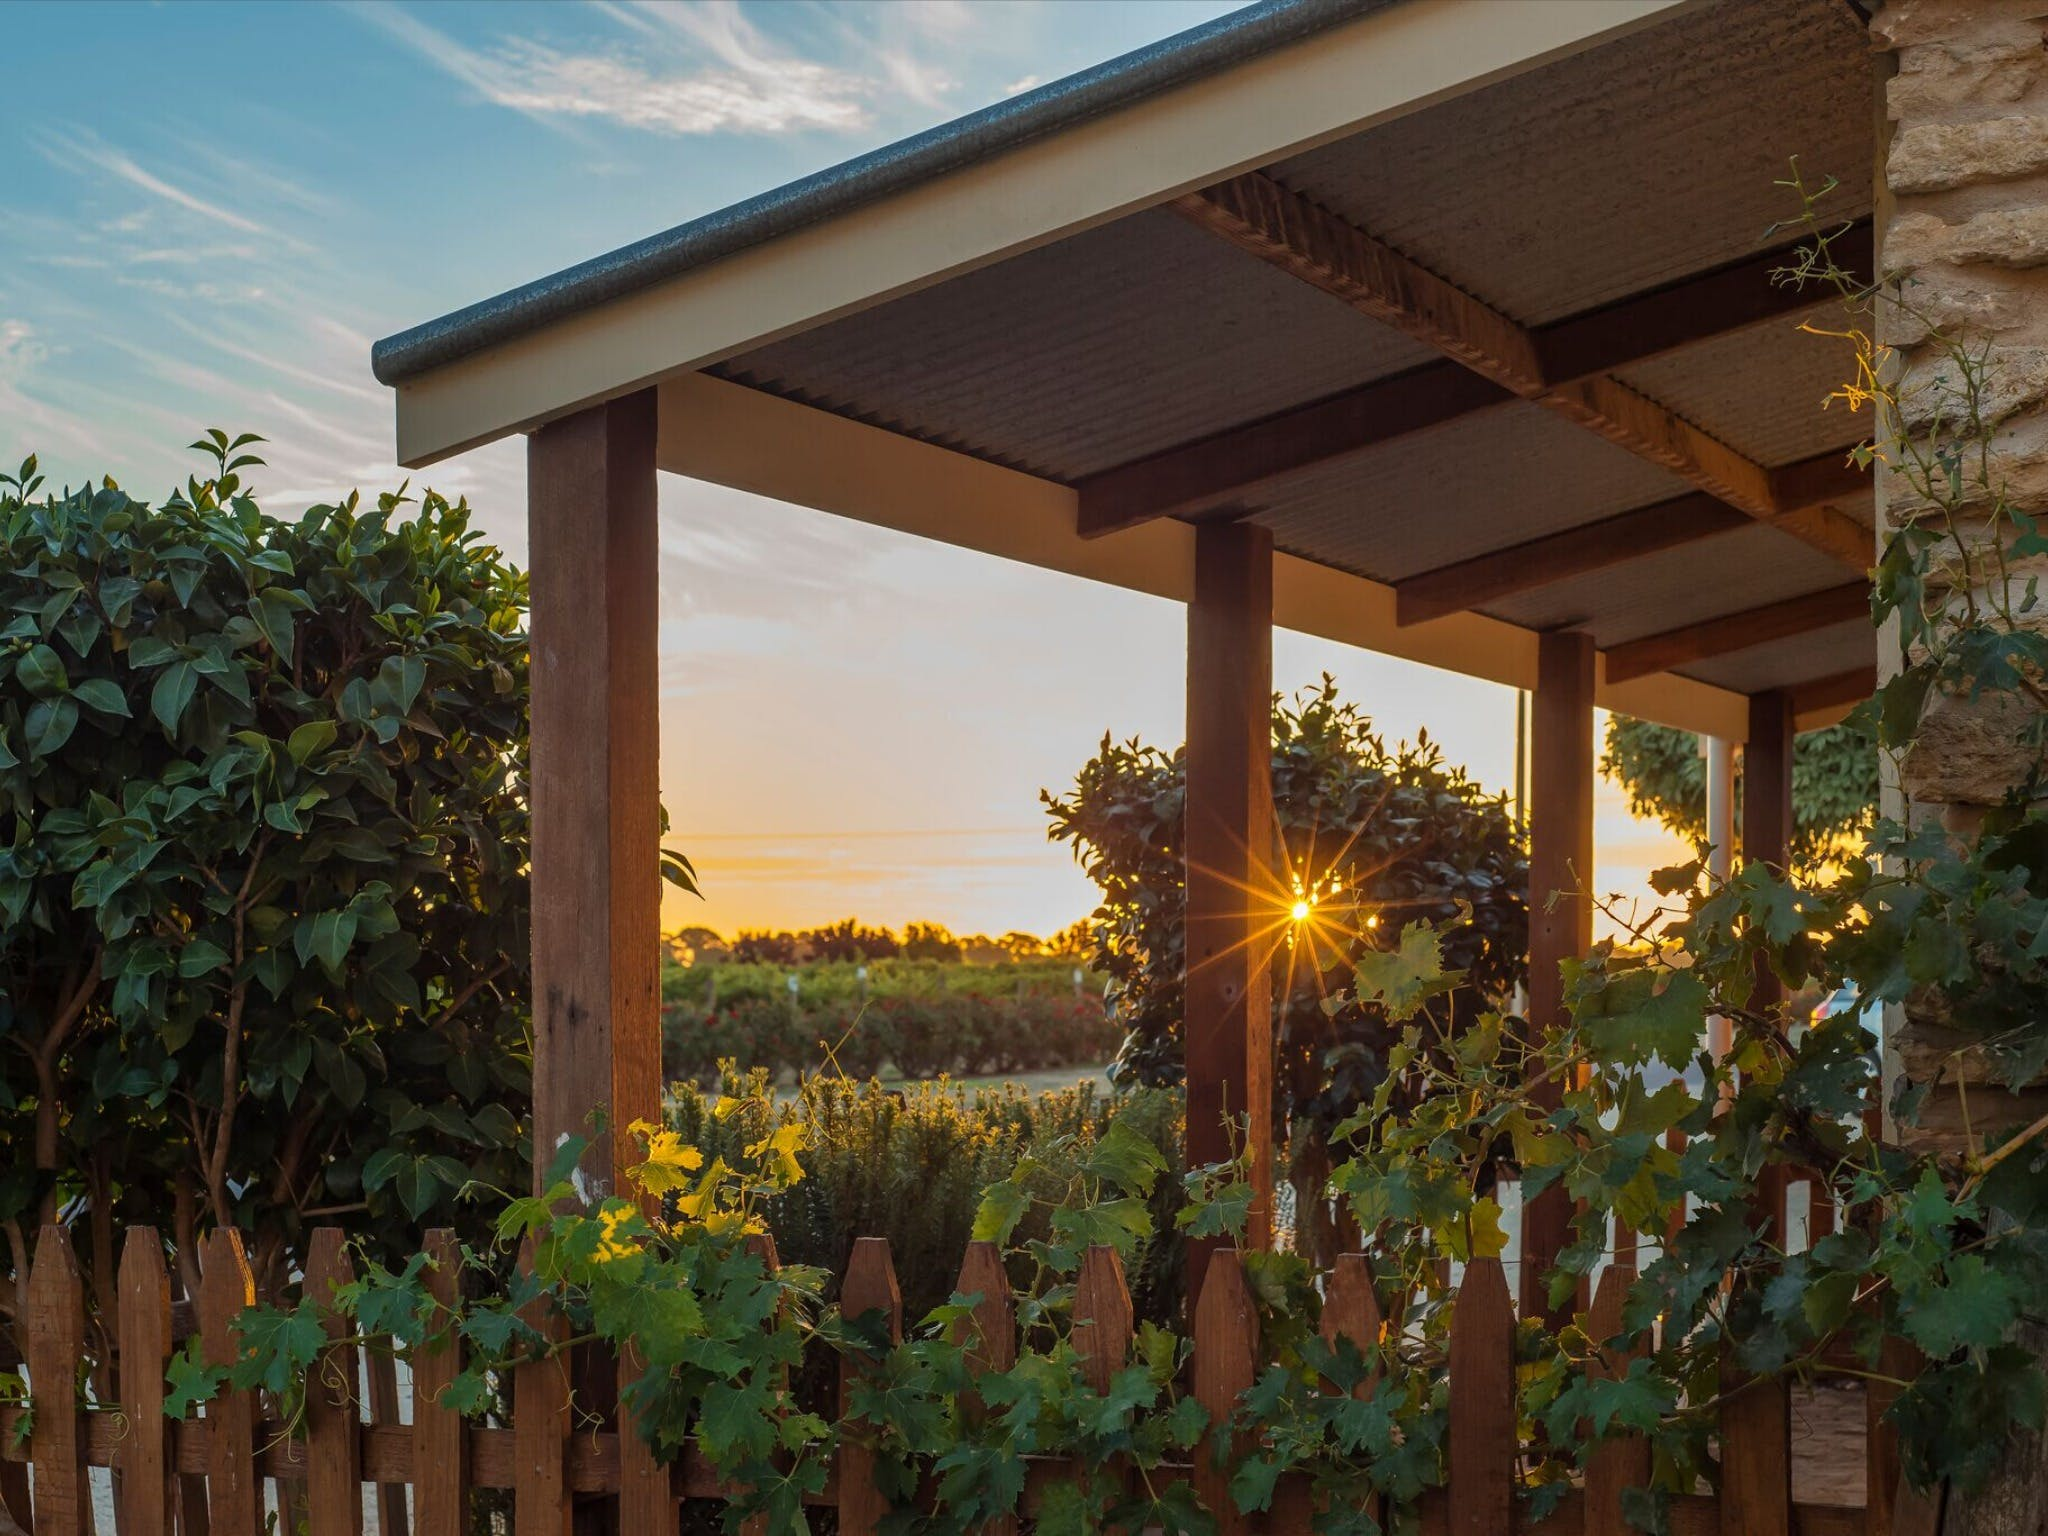 Caf in the Vines - Sydney Tourism